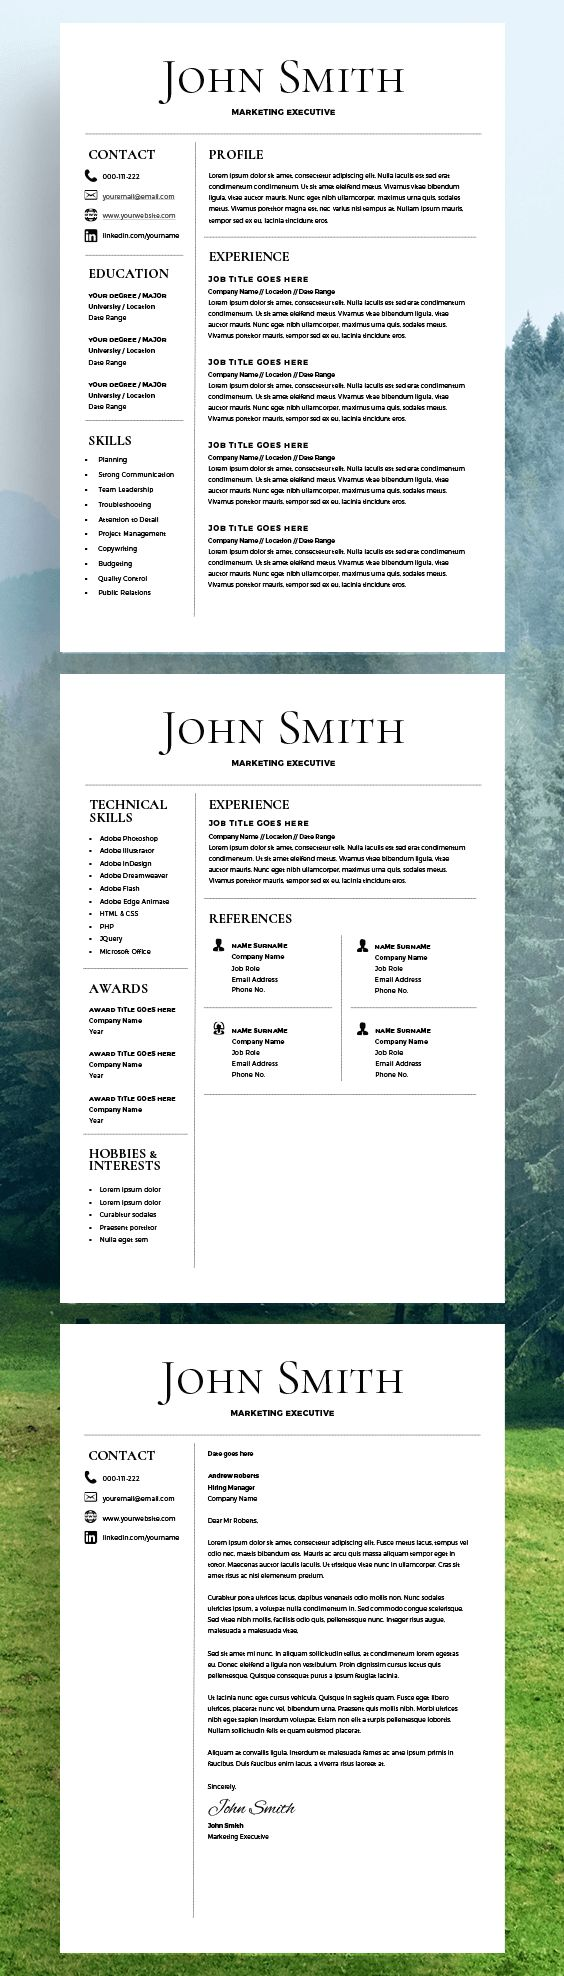 resume template cv template free cover letter ms word on mac pc - Free Cover Letter For Resume Template